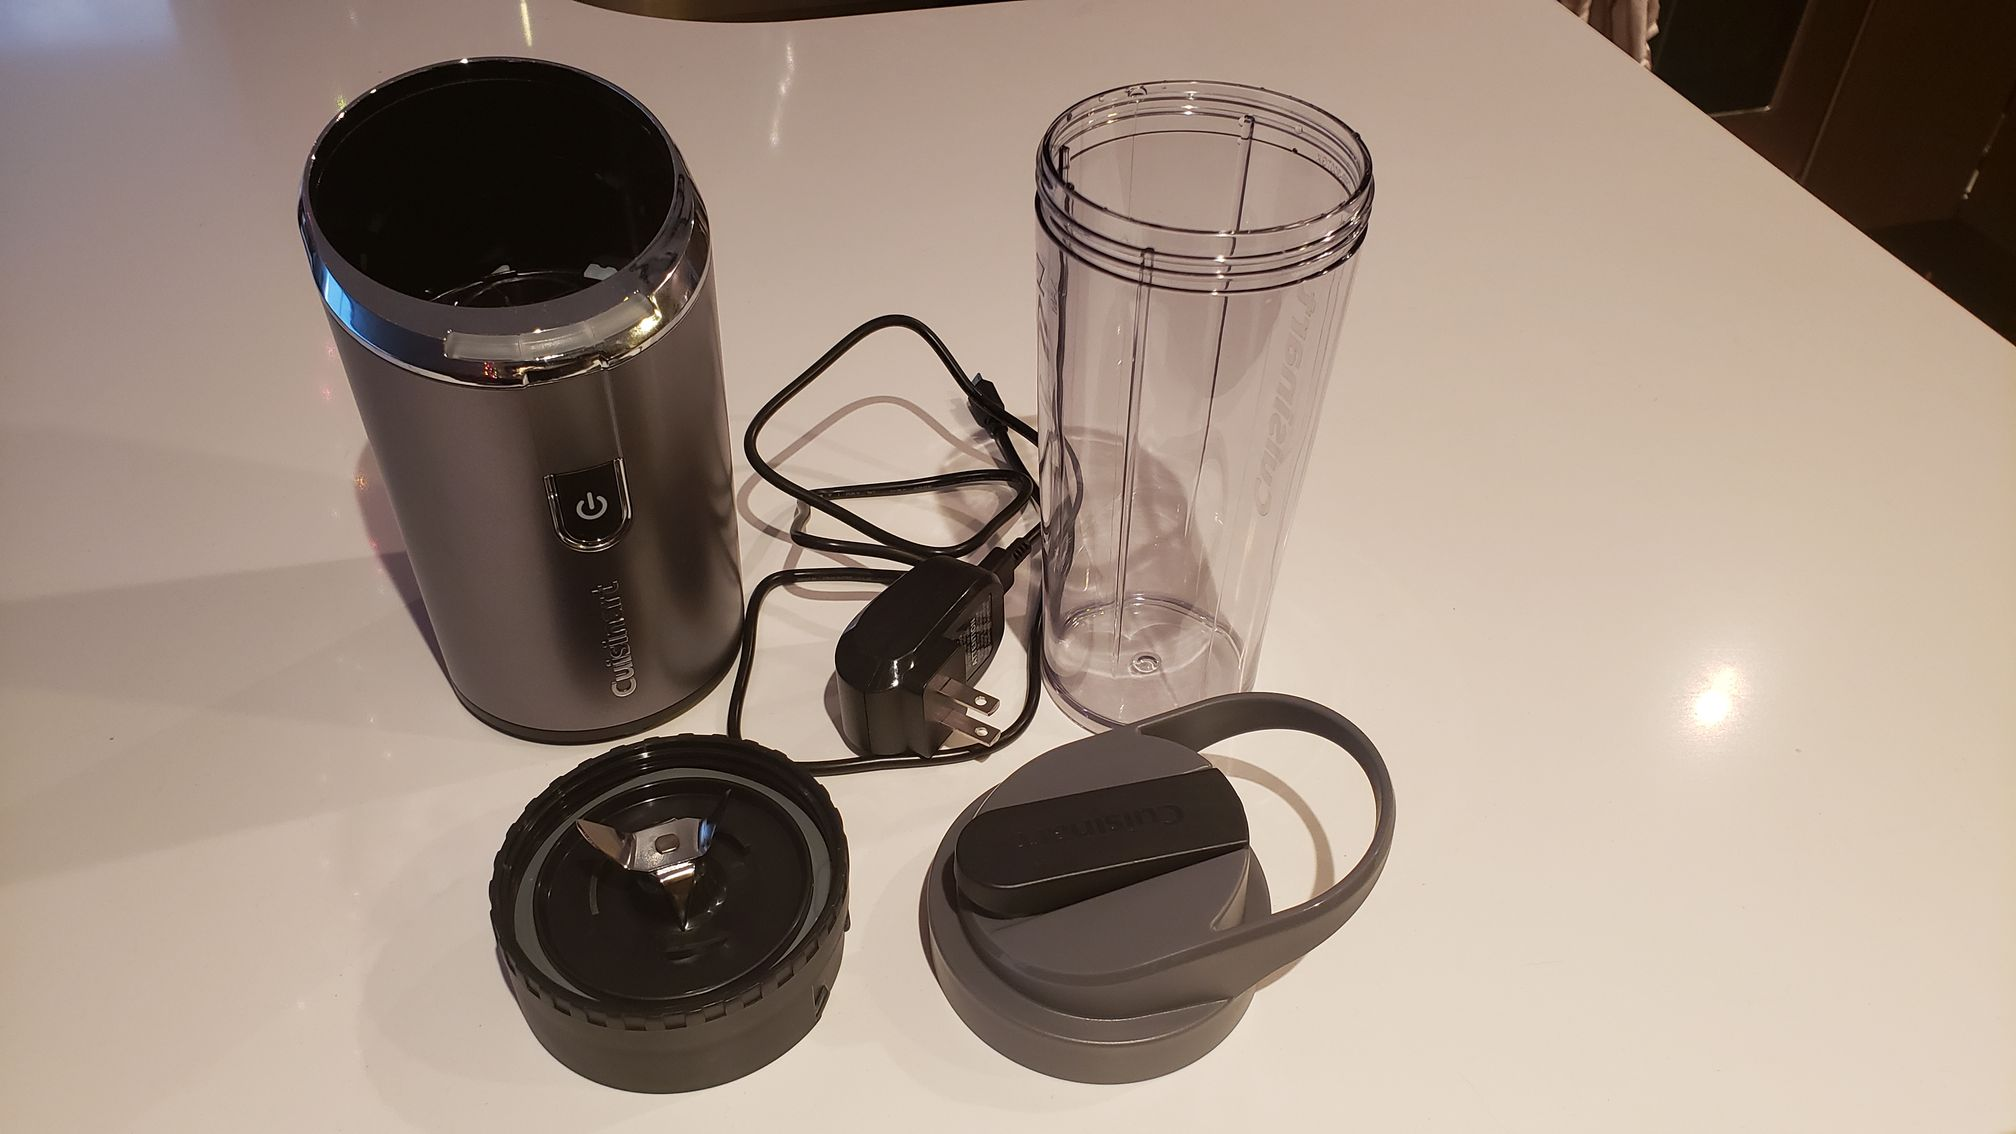 image of all the blender components: base, blades, tumbler, travel lid, and cord